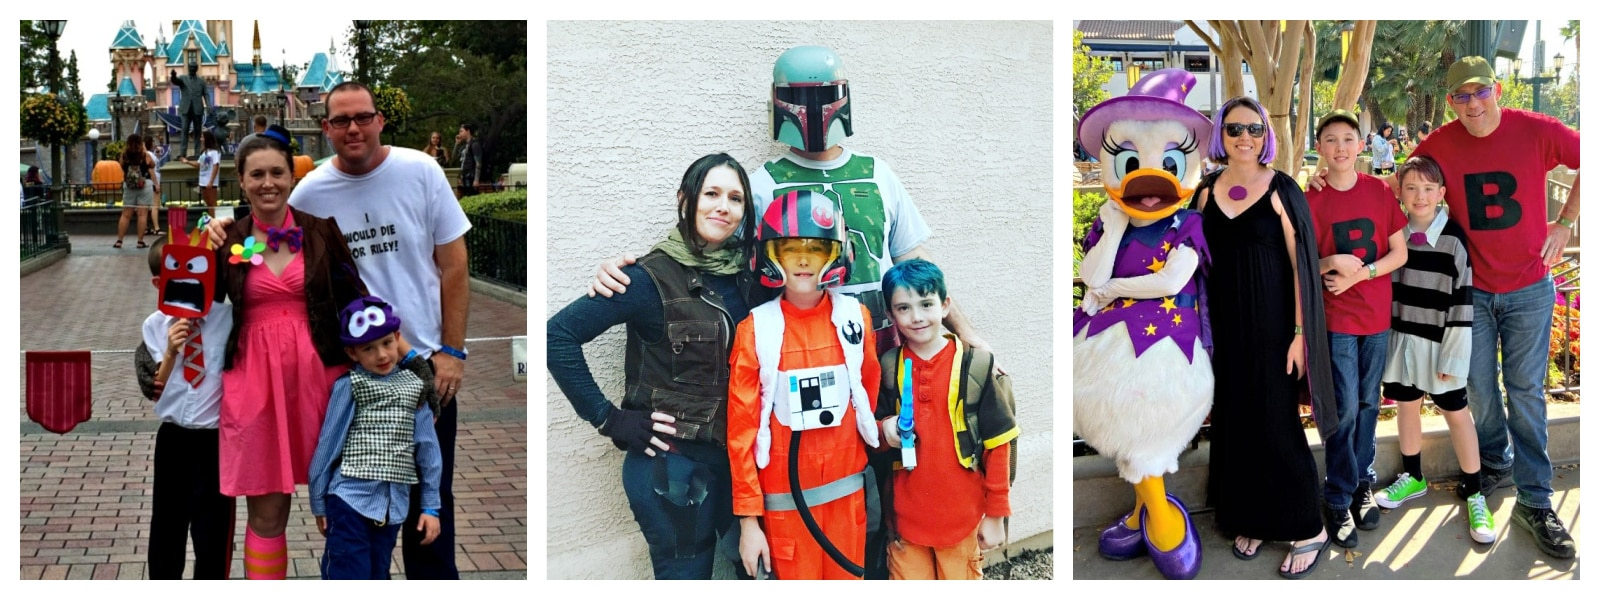 3 pictures of a family wearing Disney costume themes